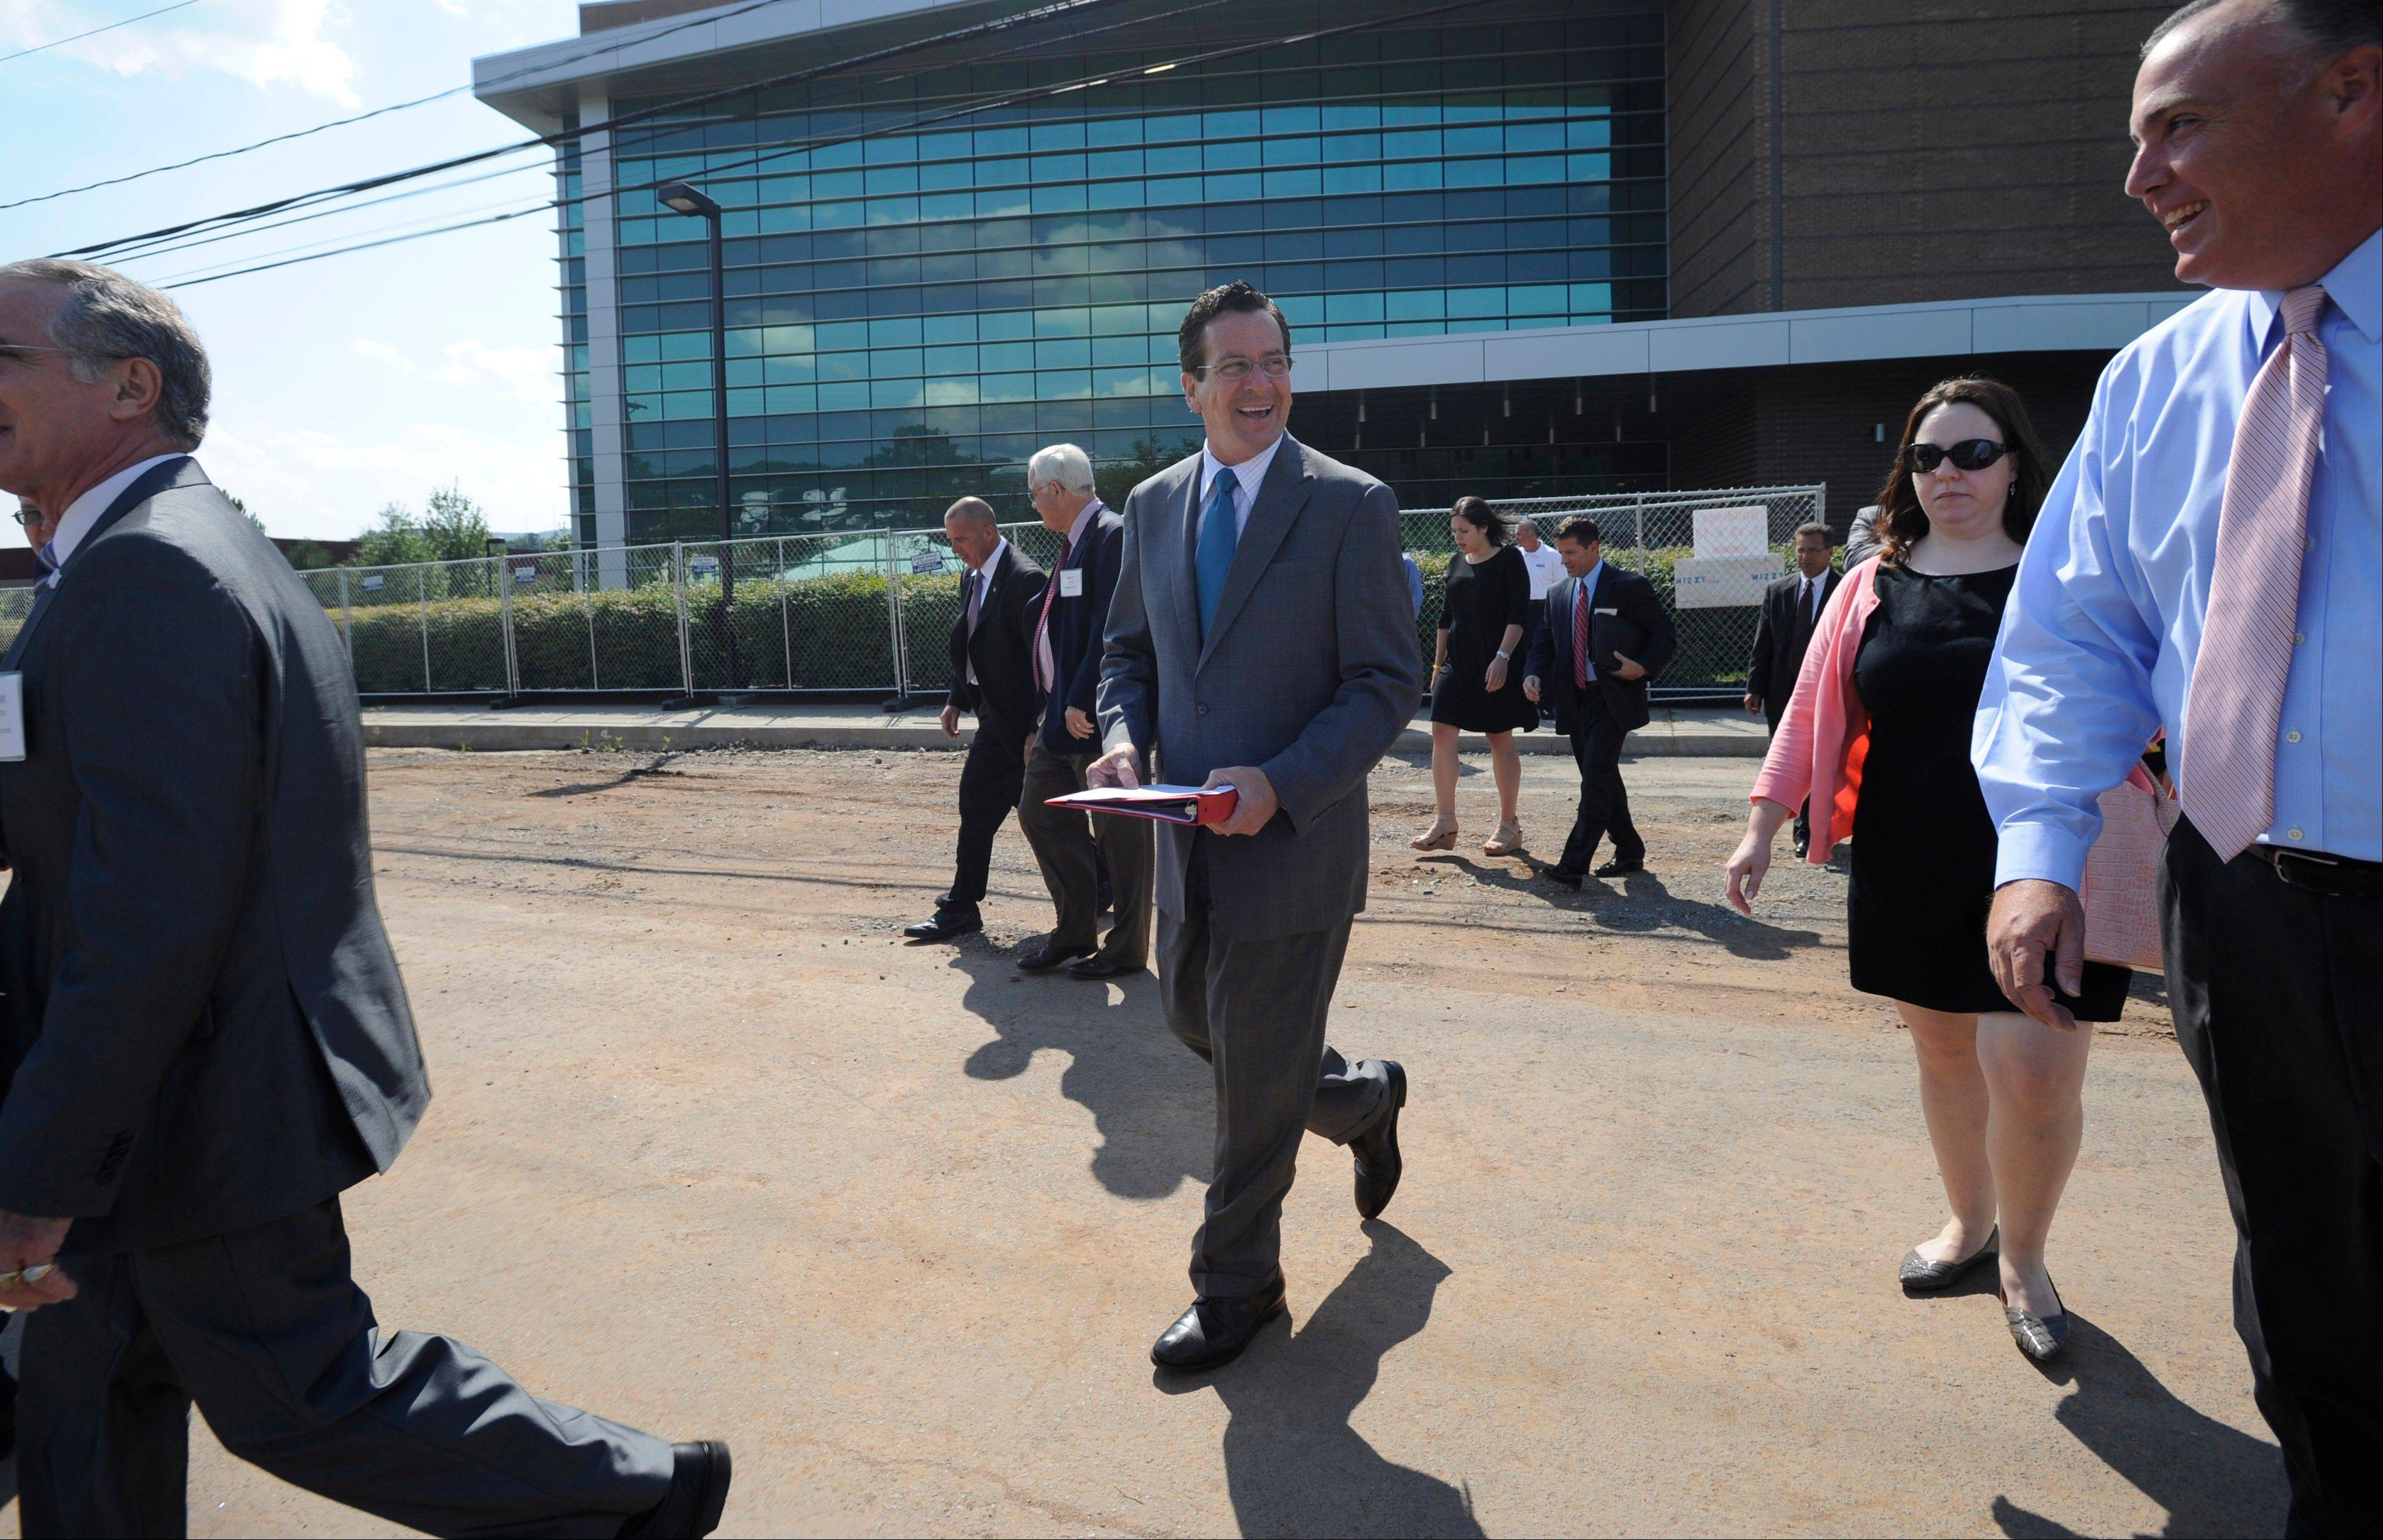 Connecticut Gov. Dannel P. Malloy, center, and officials from ESPN arrive Tuesday at a ground breaking ceremony for a new building on the campus of ESPN in Bristol, Conn. ESPN Will get a $17.5 million state loan to build its new Digital Center, plus up to $1.2 million for a job-training grant program.